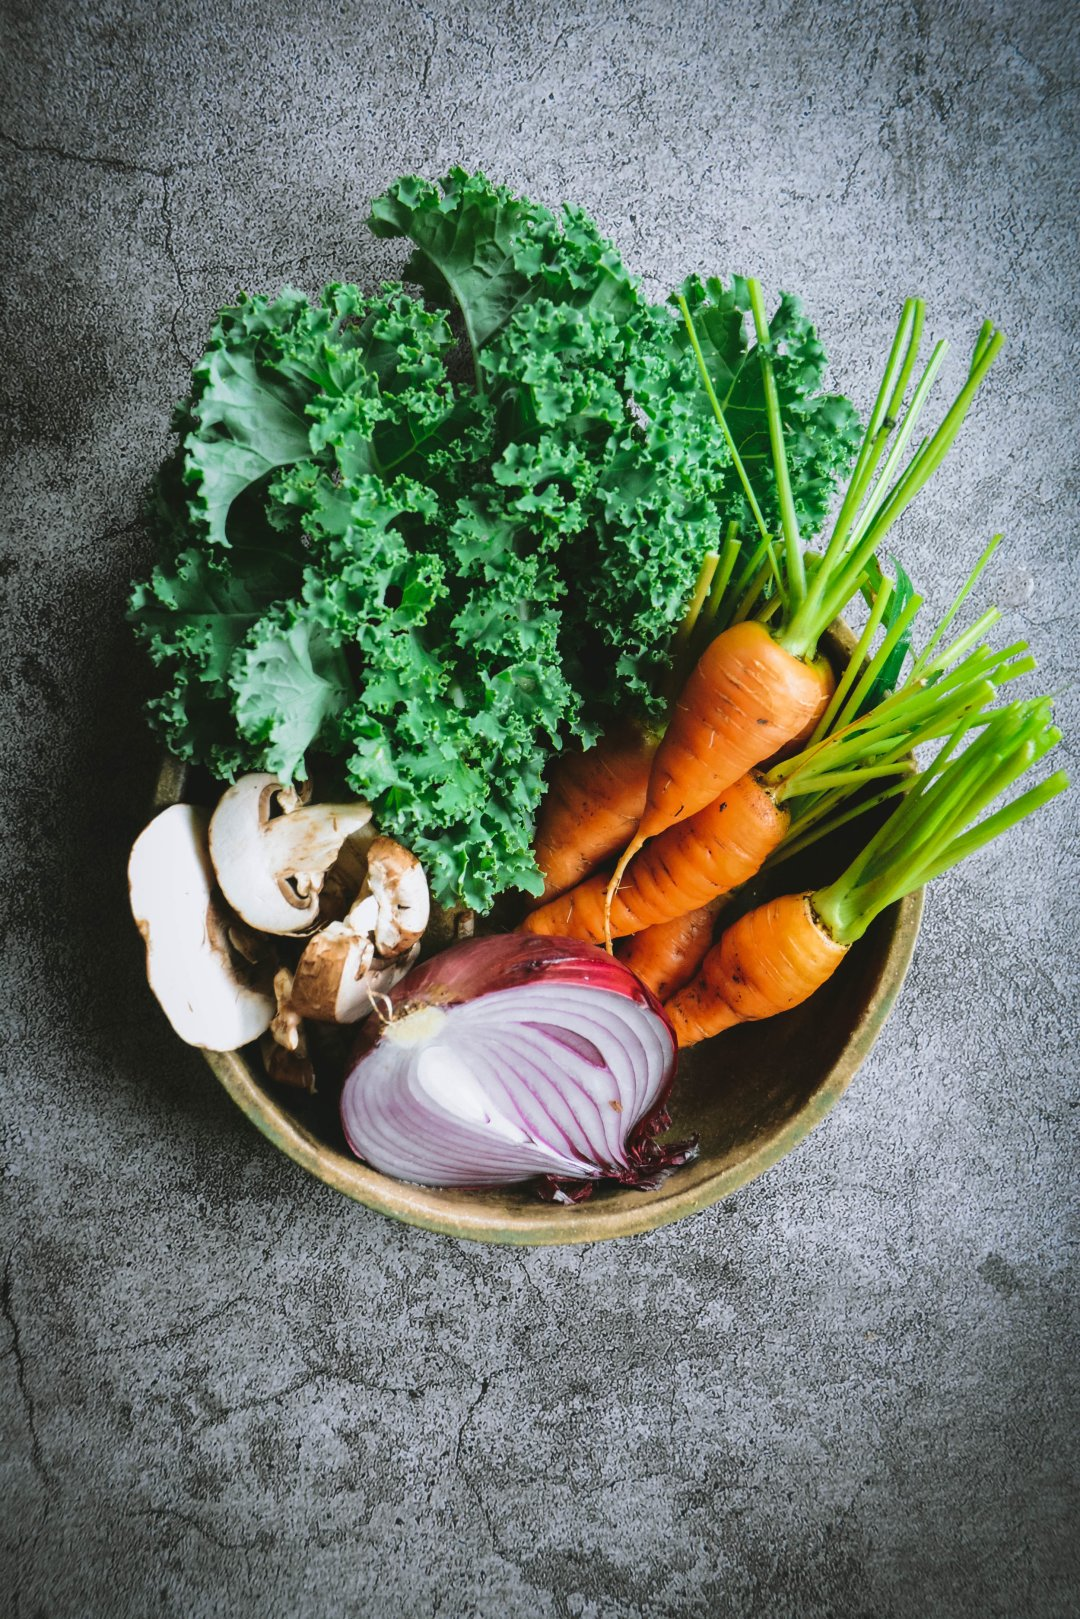 Kale mushrooms, carrots and mushrooms in bowl on table